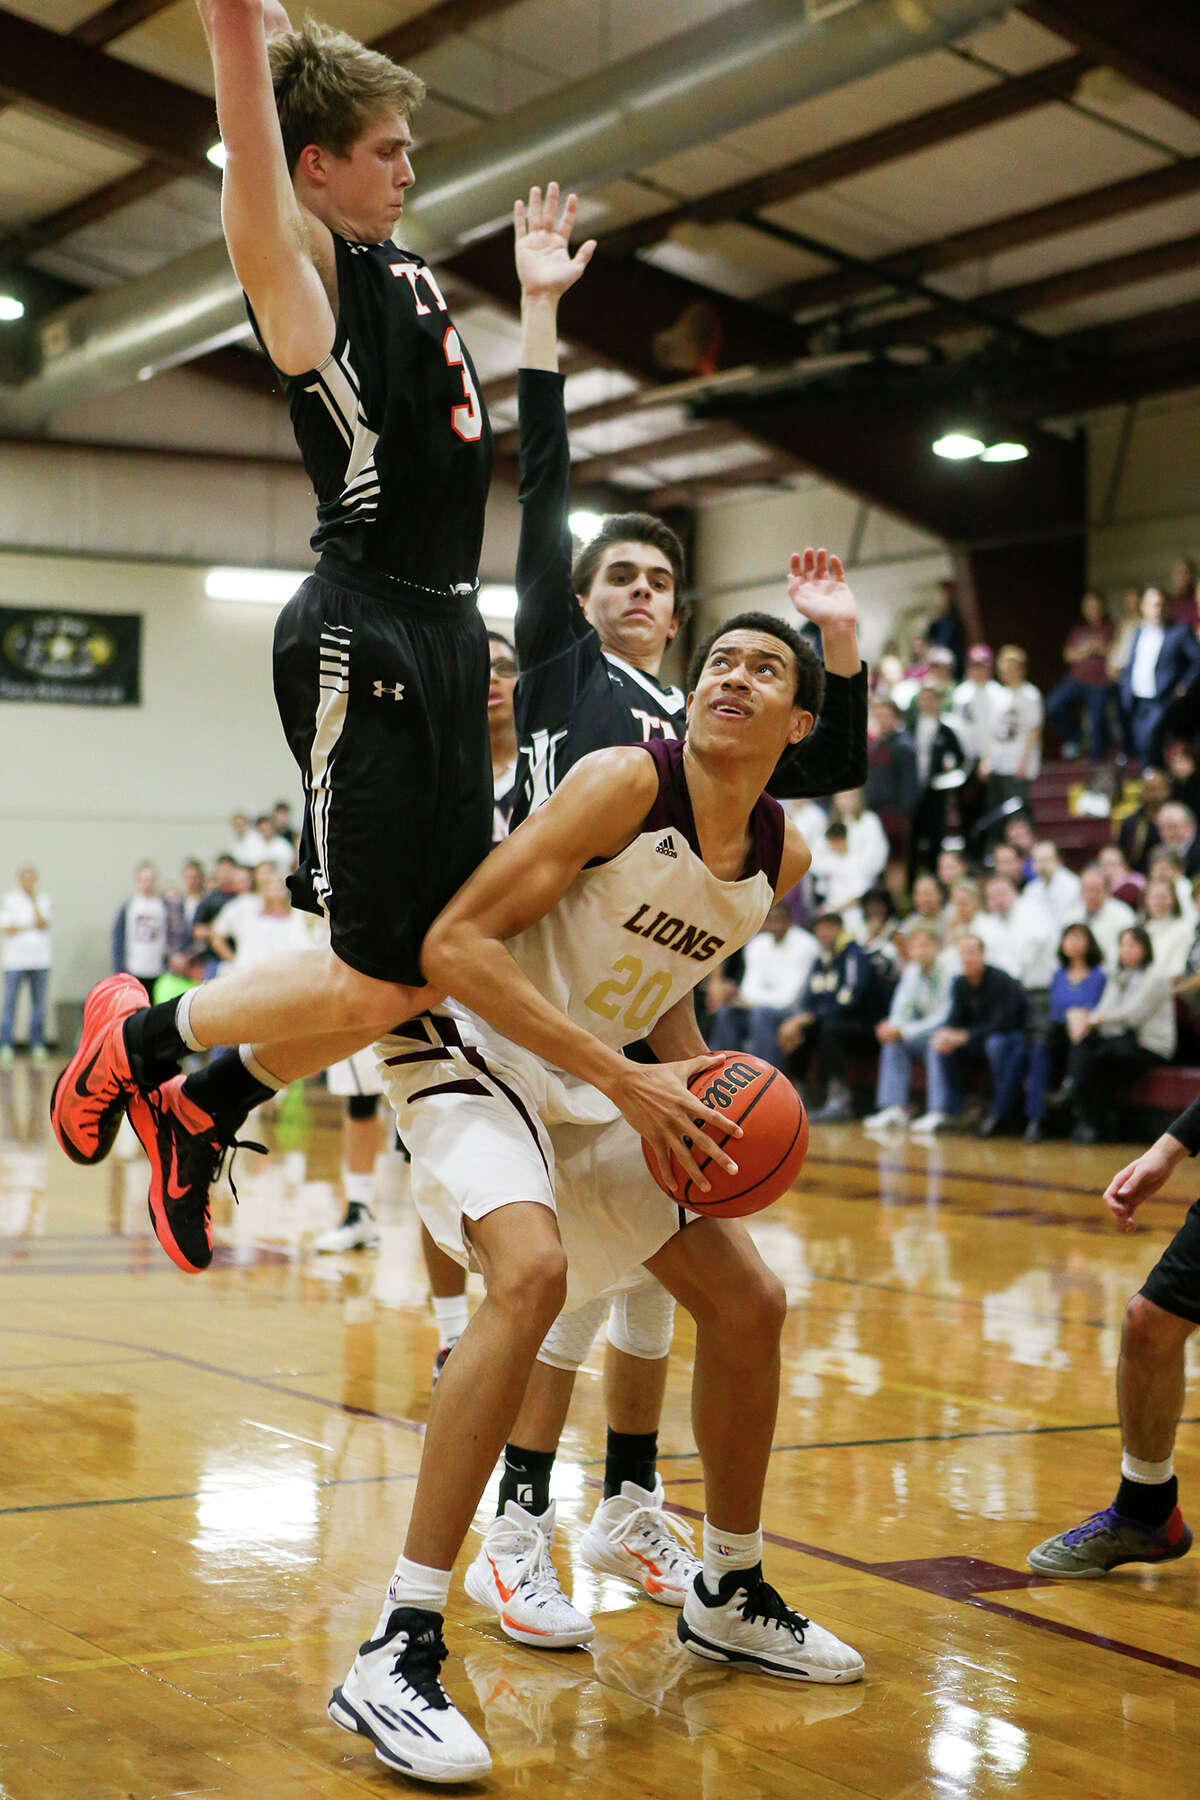 San Antonio Christian's Justin Rpbinsin (right) looks for a way to the basket past Nelson Black (left) and Collin Peterson of TMI during the first second half of their TAPPS 4-4A game at San Antonio Christian on Tuesday, Jan 13, 2015. San Antonio Christian beat TMI 51-45. MARVIN PFEIFFER/ mpfeiffer@express-news.net